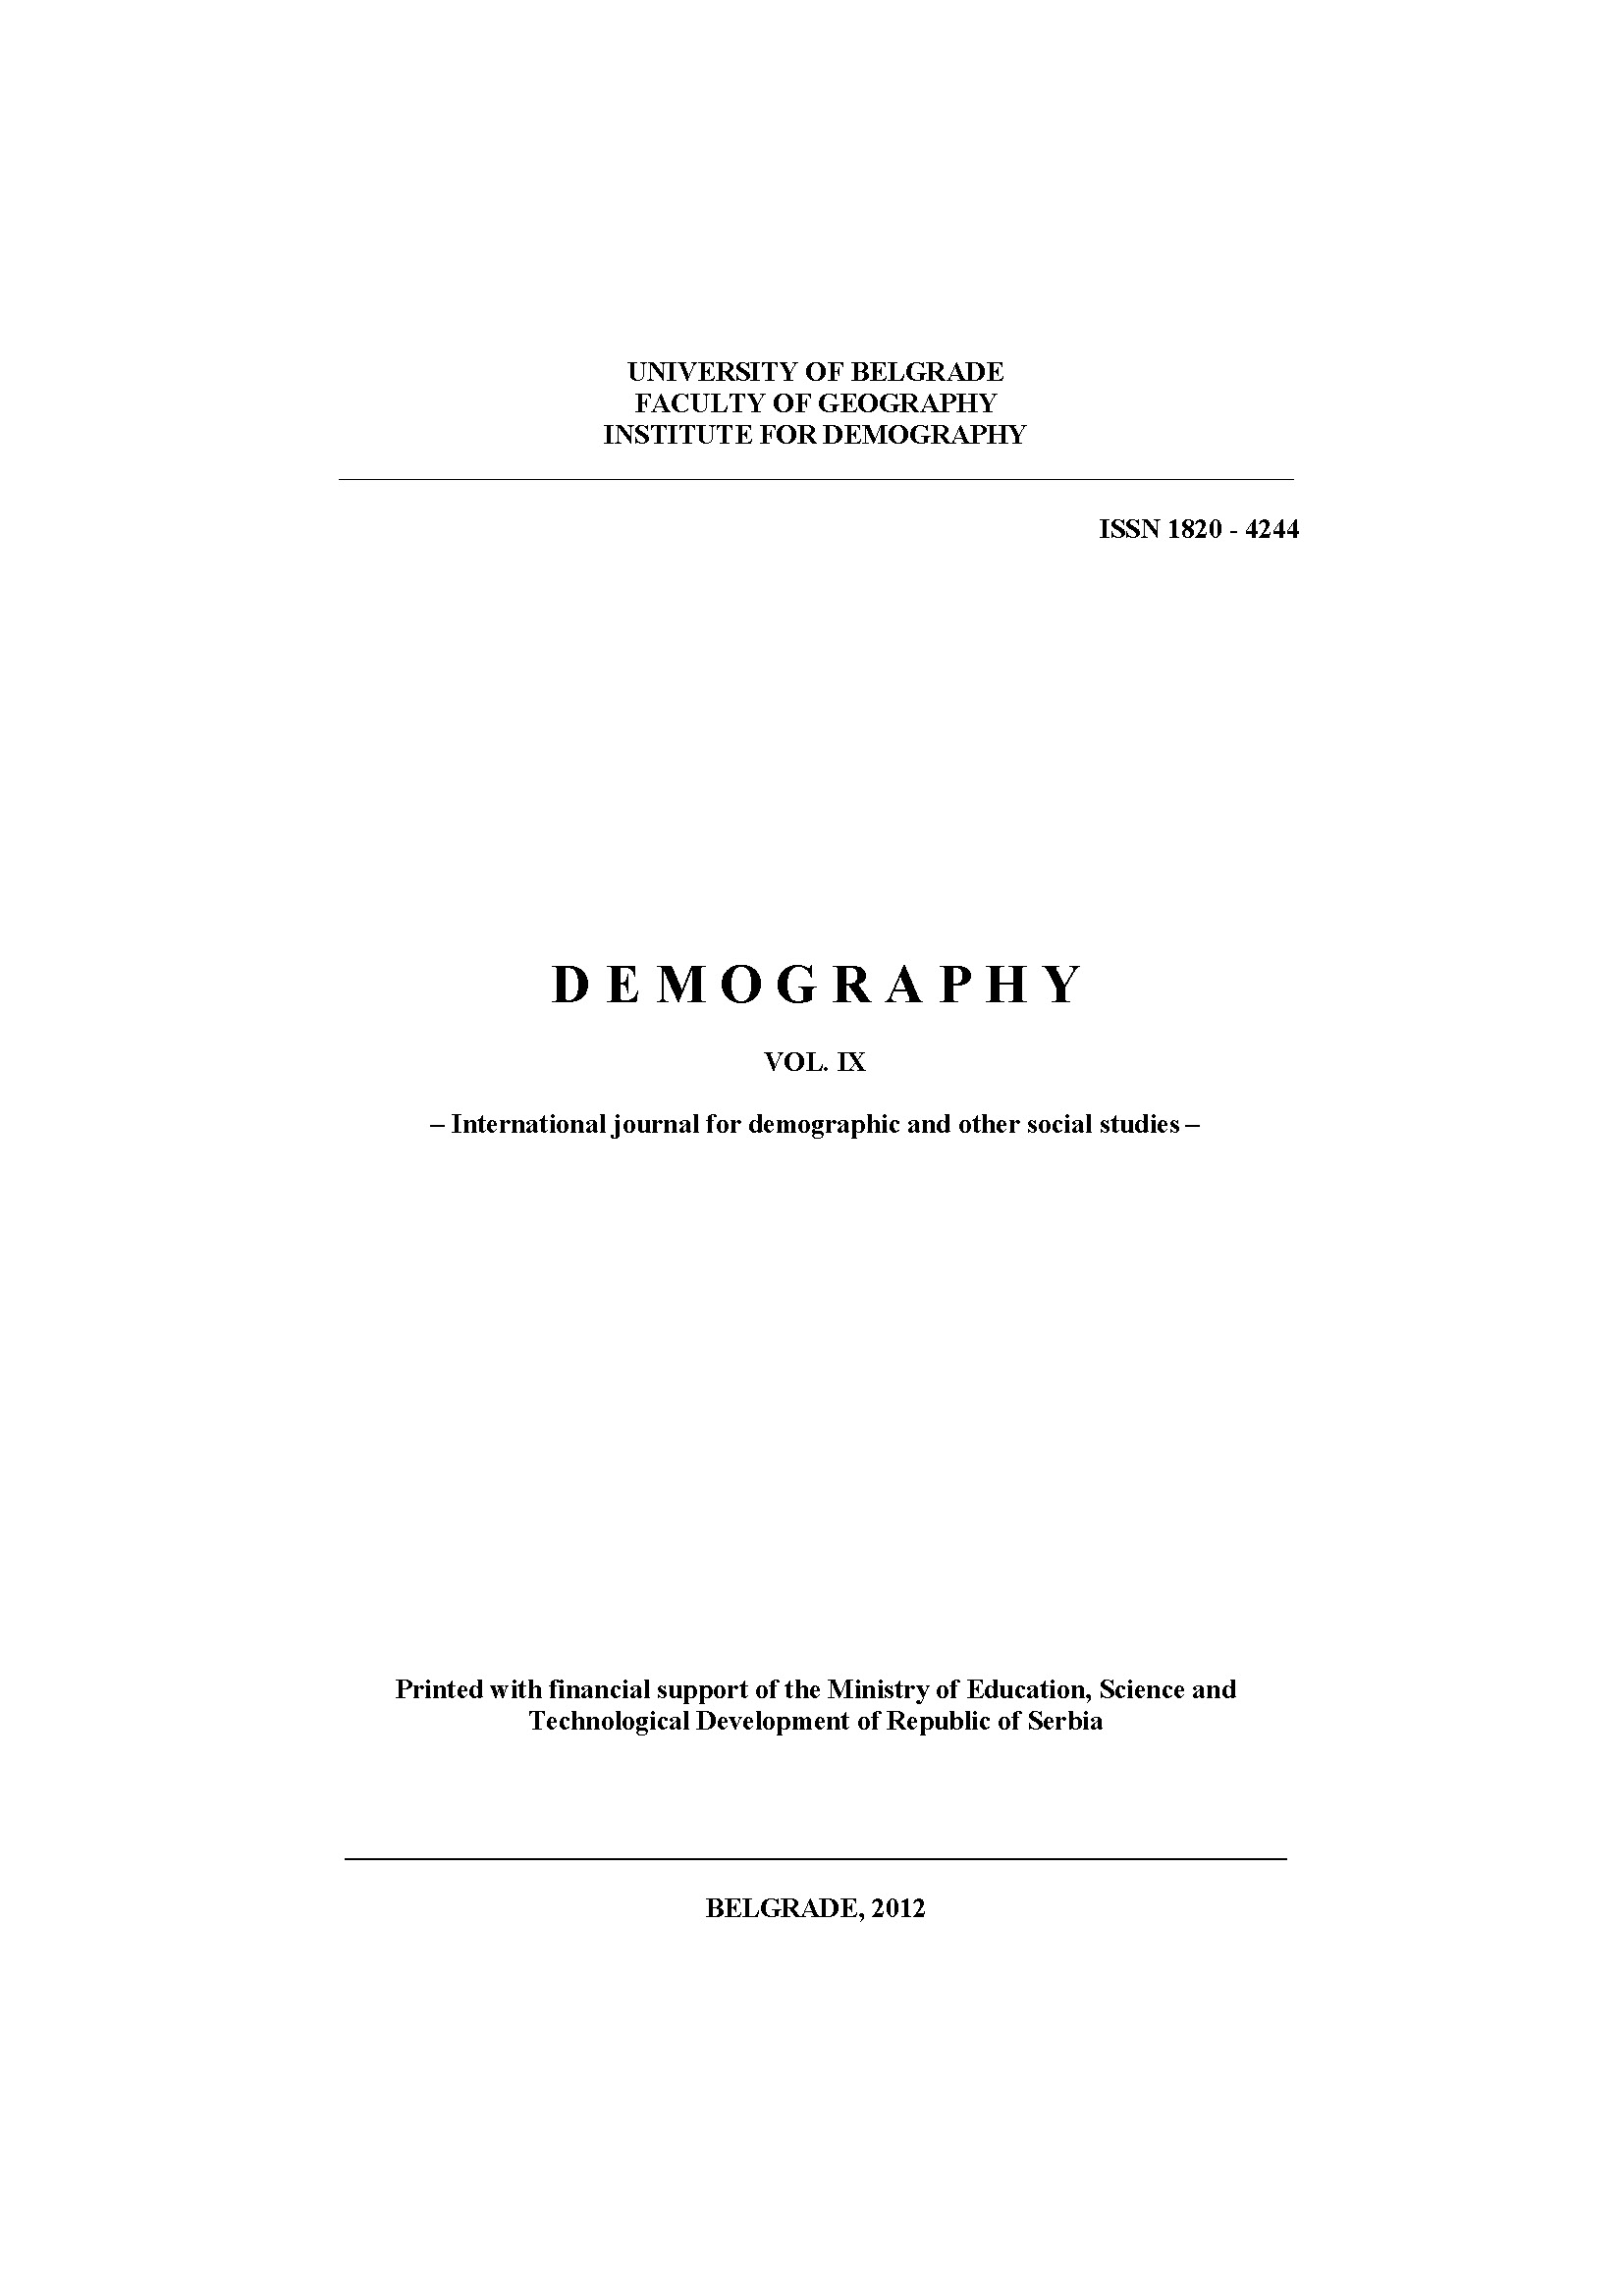 Changes in Mortality of the Republika Srpska Population in the Period 1996 to 2010 – Causes and Consequences Cover Image